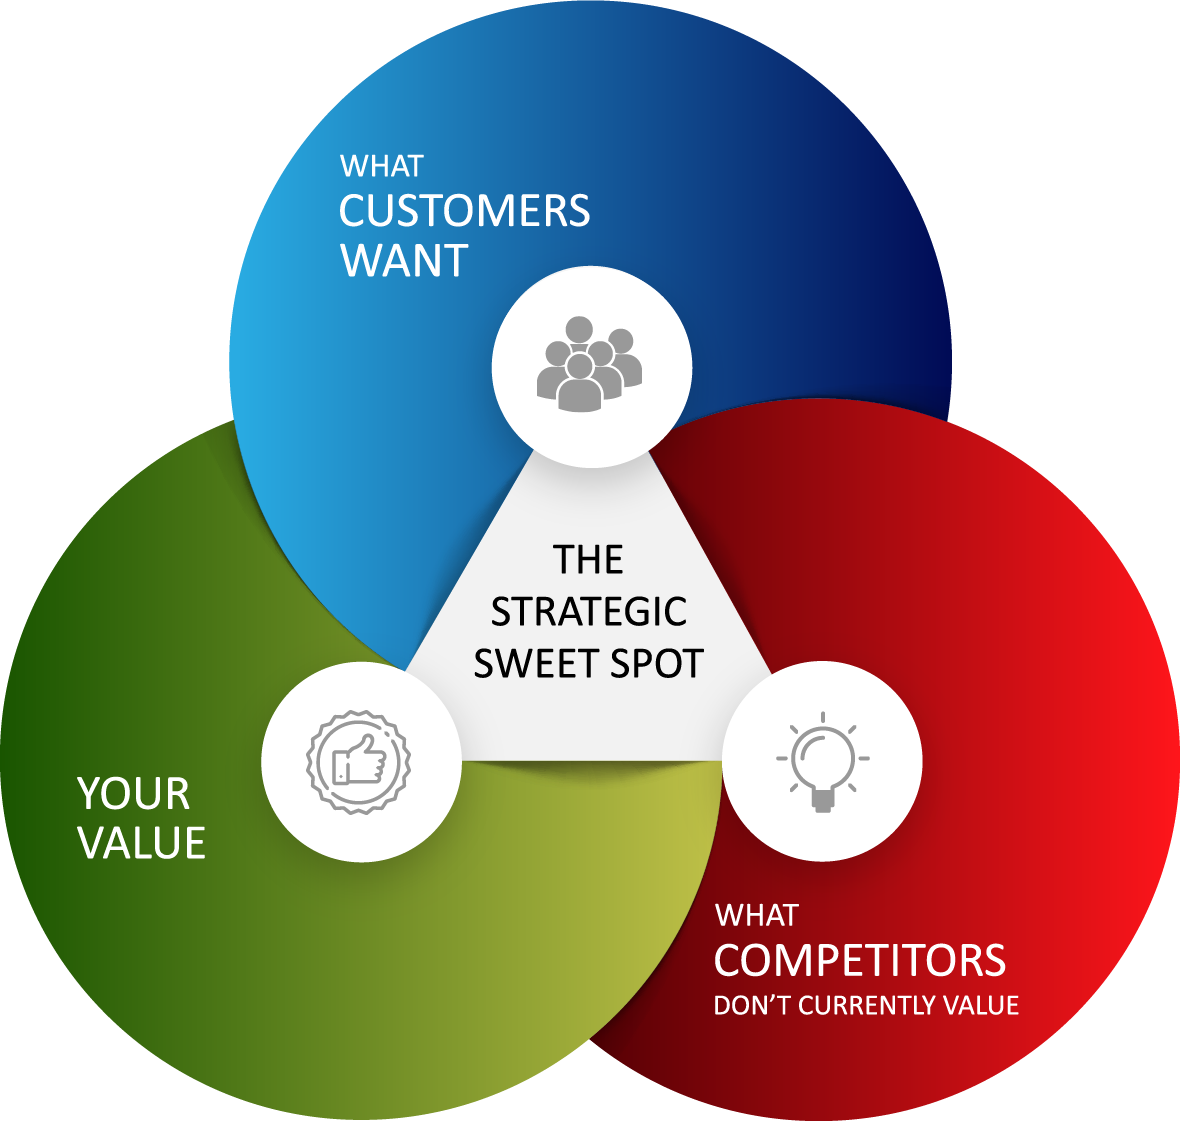 the strategic sweet spot